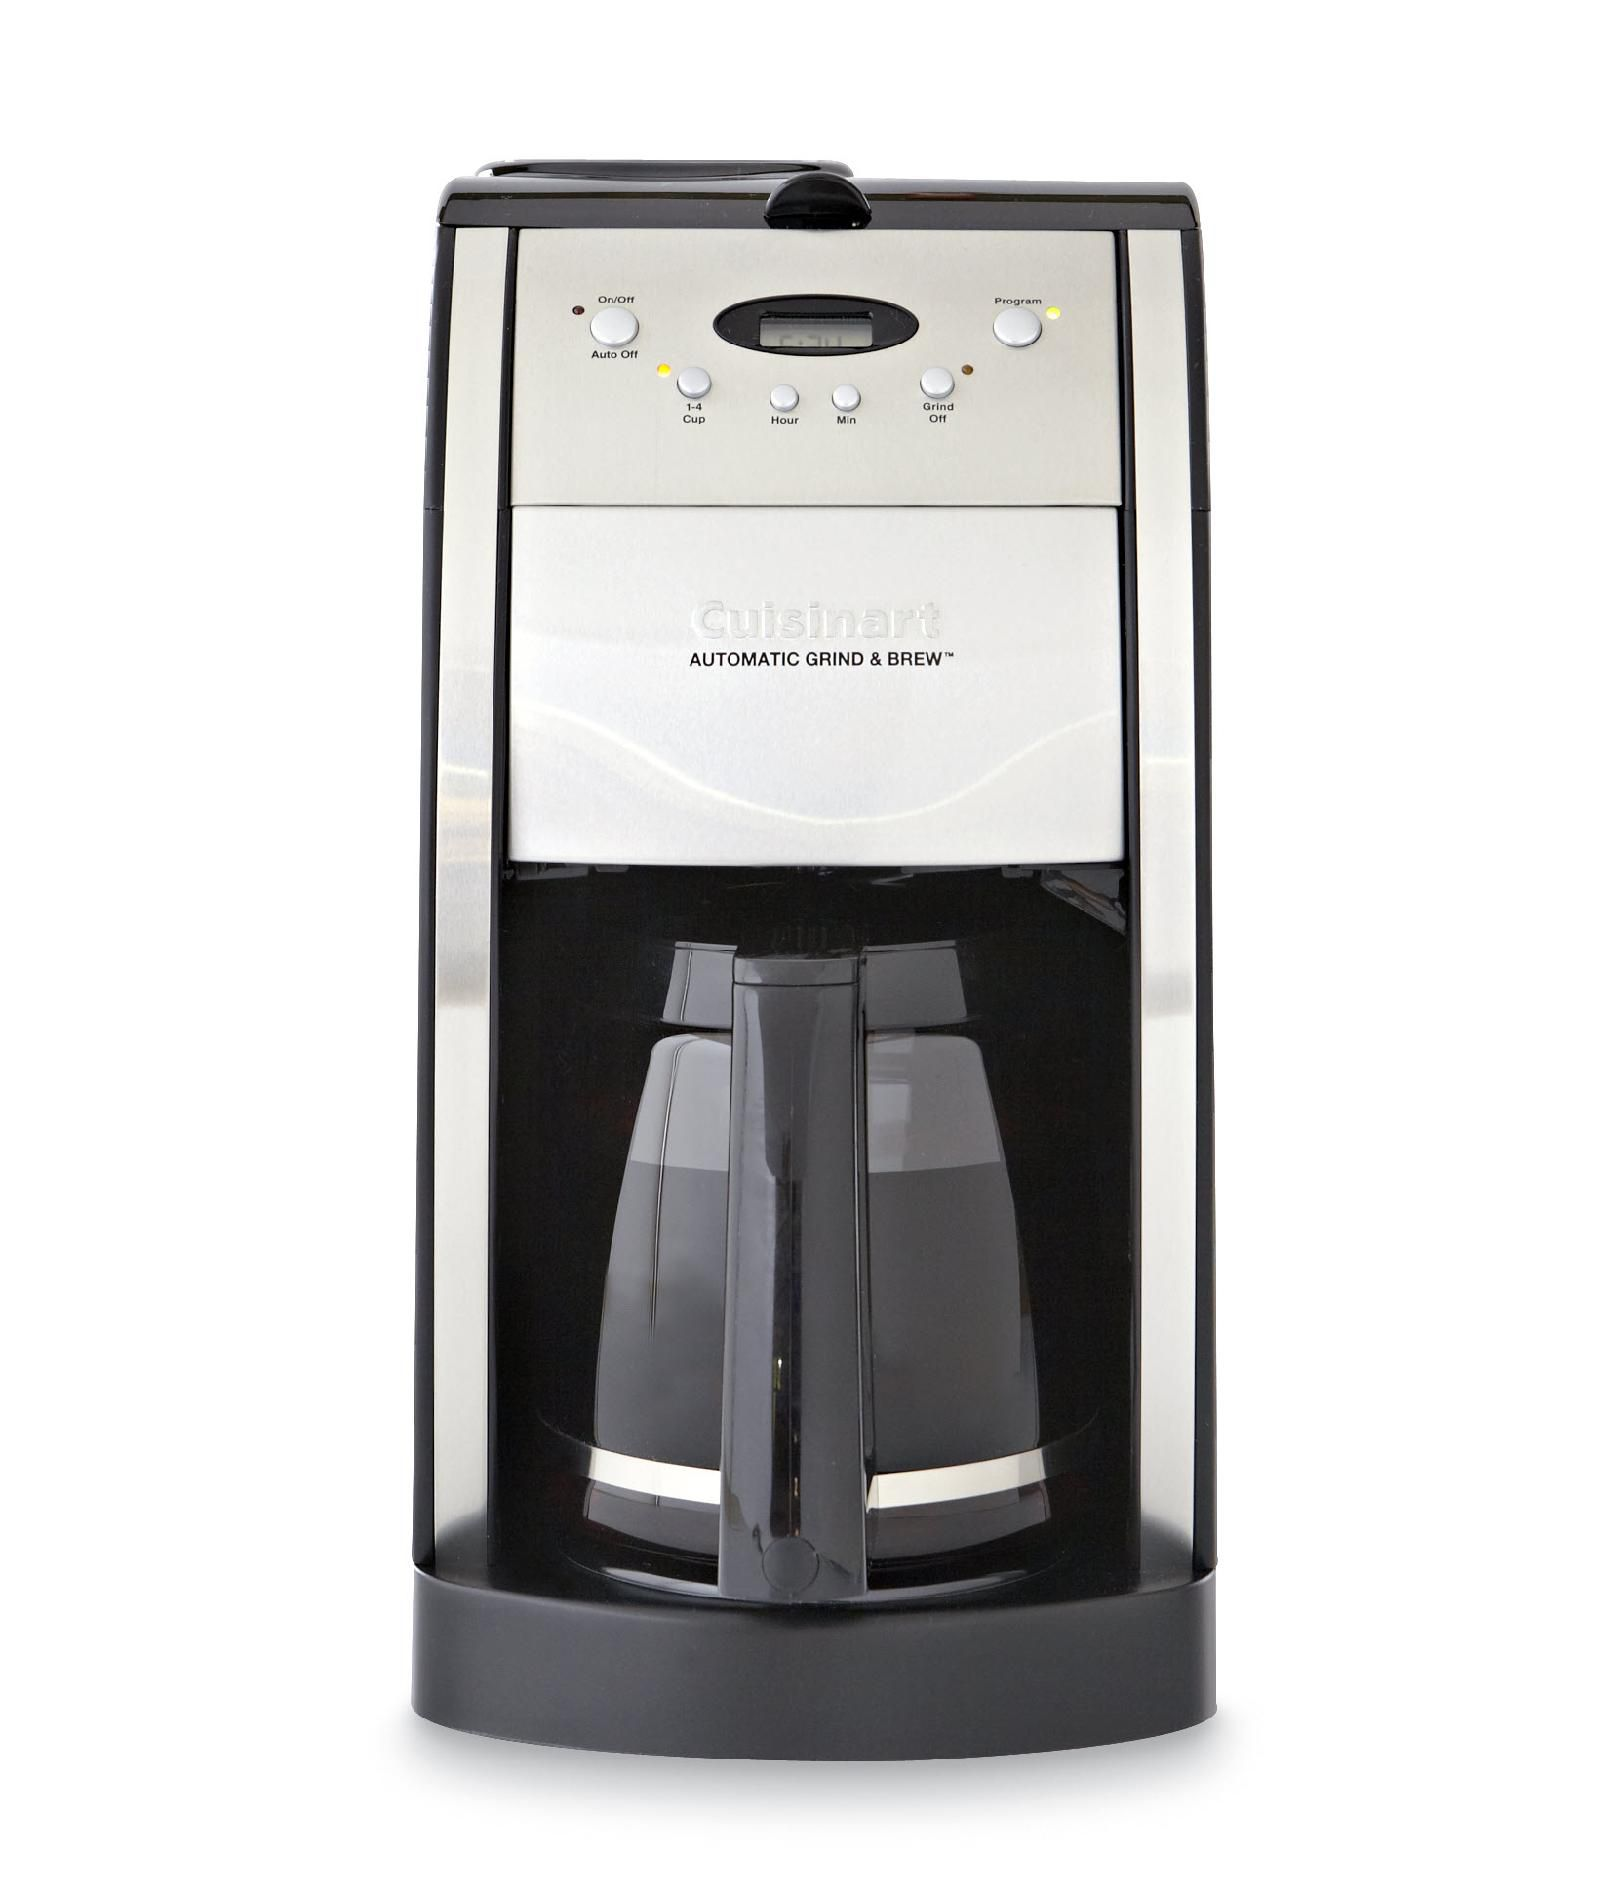 Cuisinart Premier Coffee Series Grind/Brew Automatic 12-Cup Coffee Maker